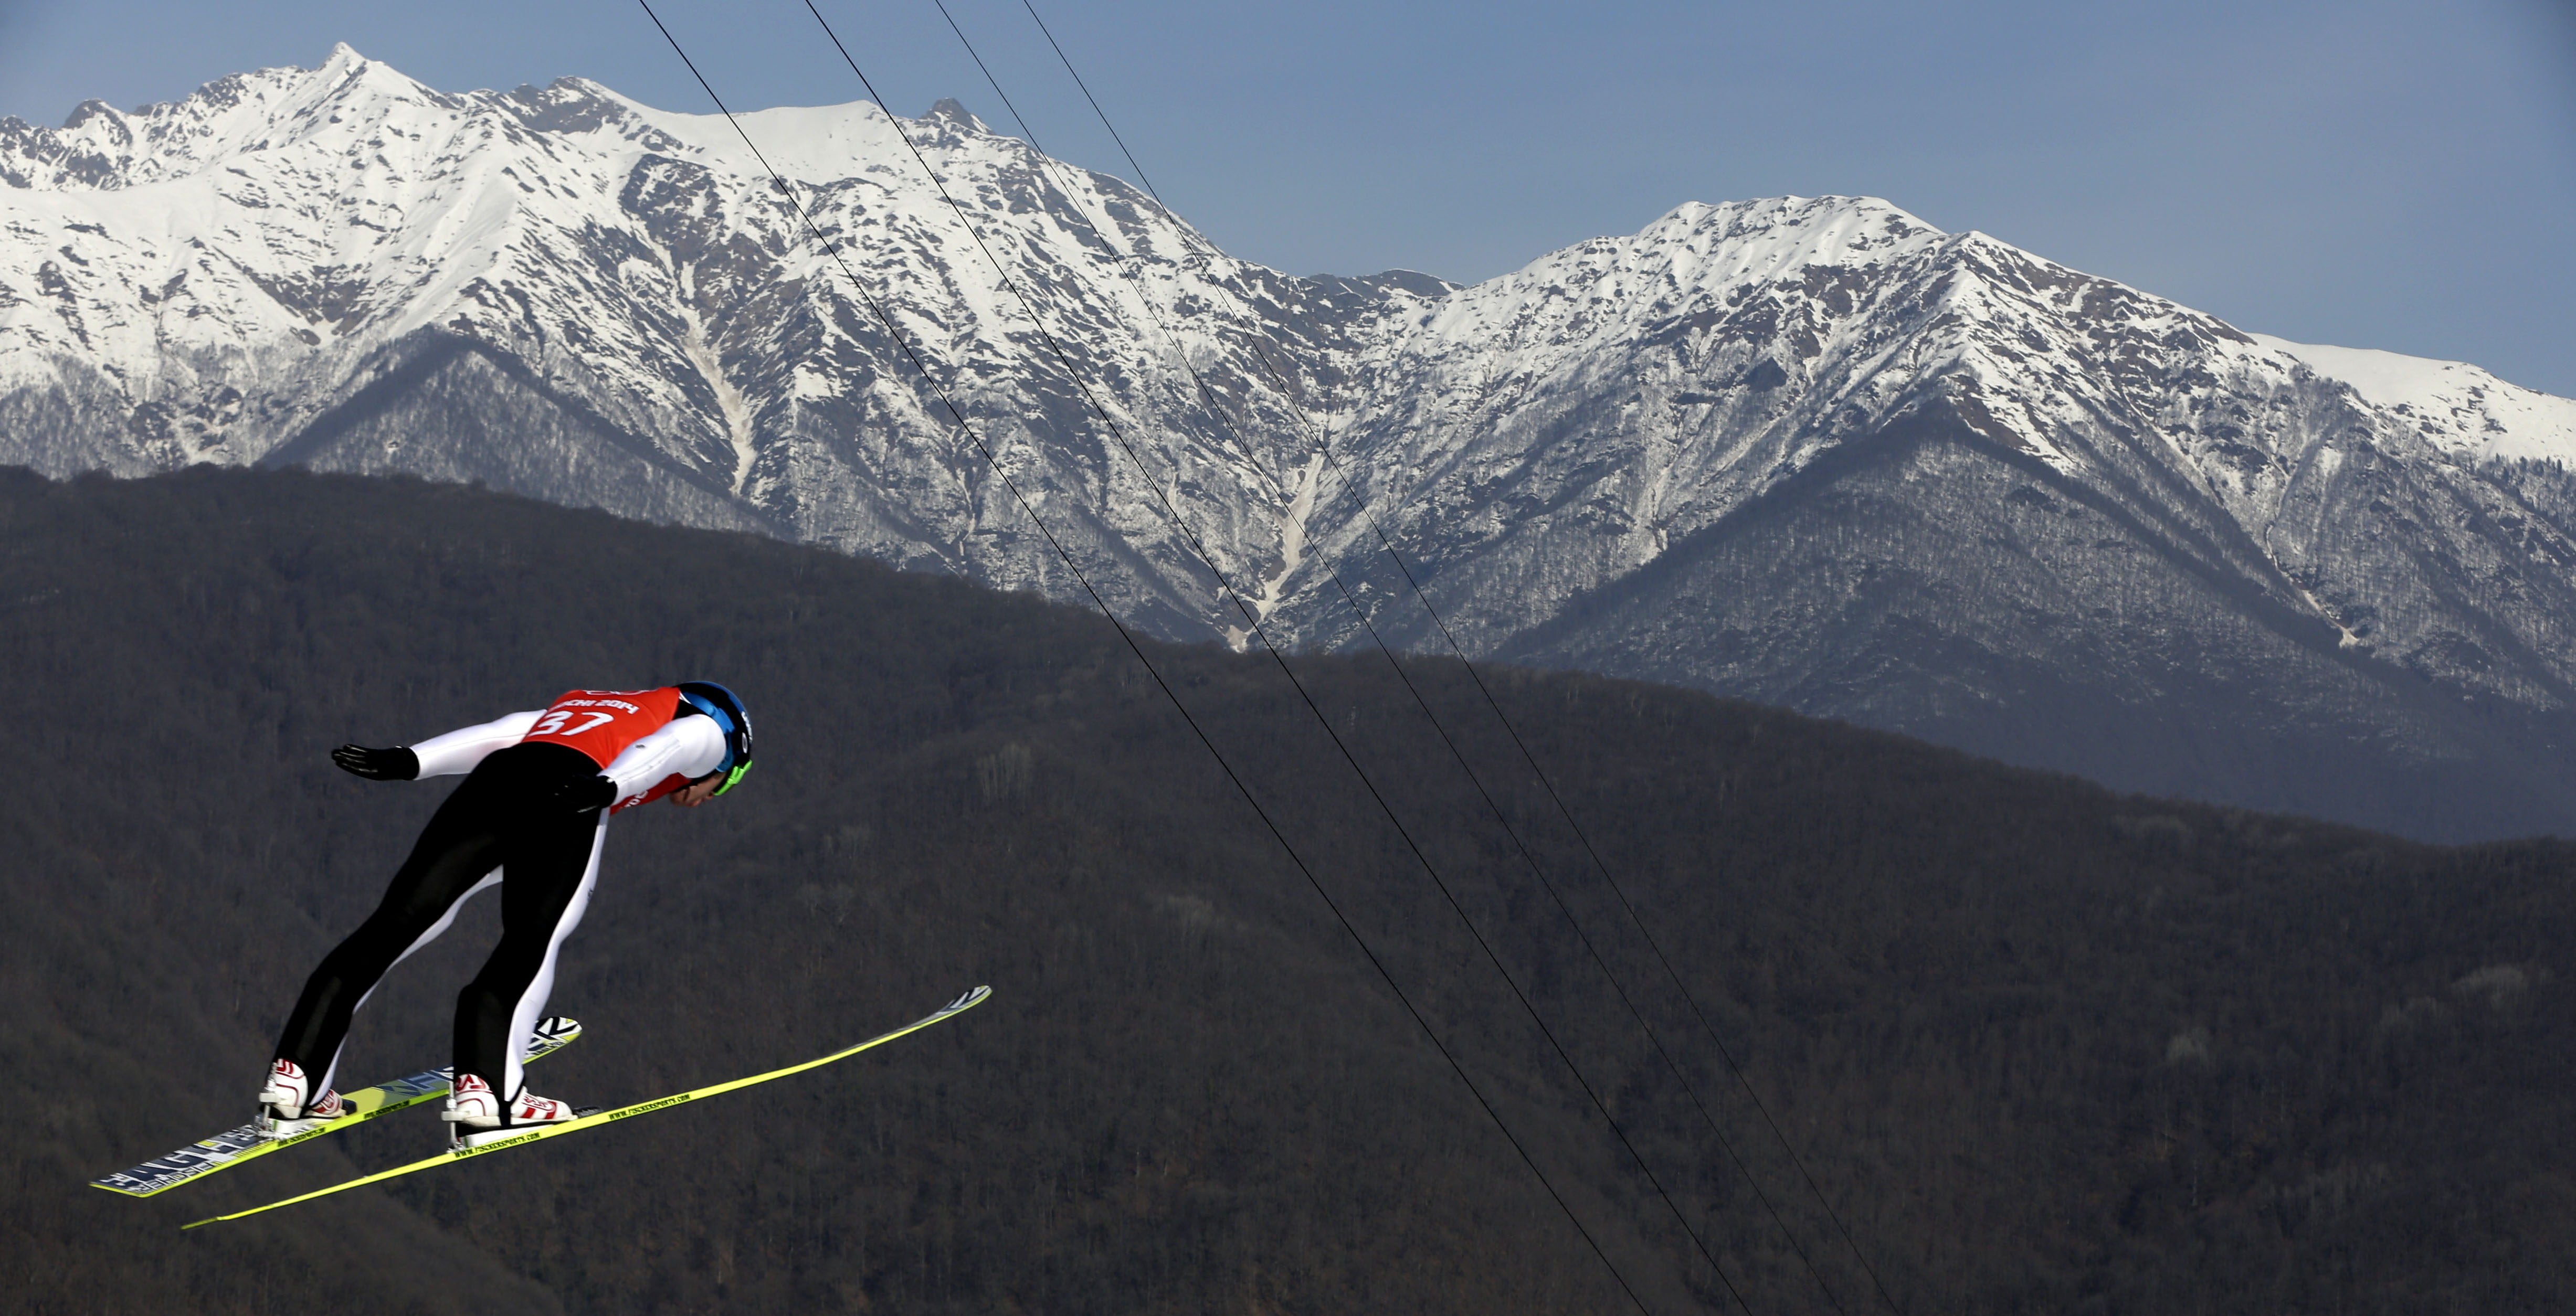 Alessandro Pittin soars through the air during a Nordic Combined training at the 2014 Winter Olympics, Sunday, Feb. 16, 2014, in Krasnaya Polyana, Russia. (AP Photo/Matthias Schrader)